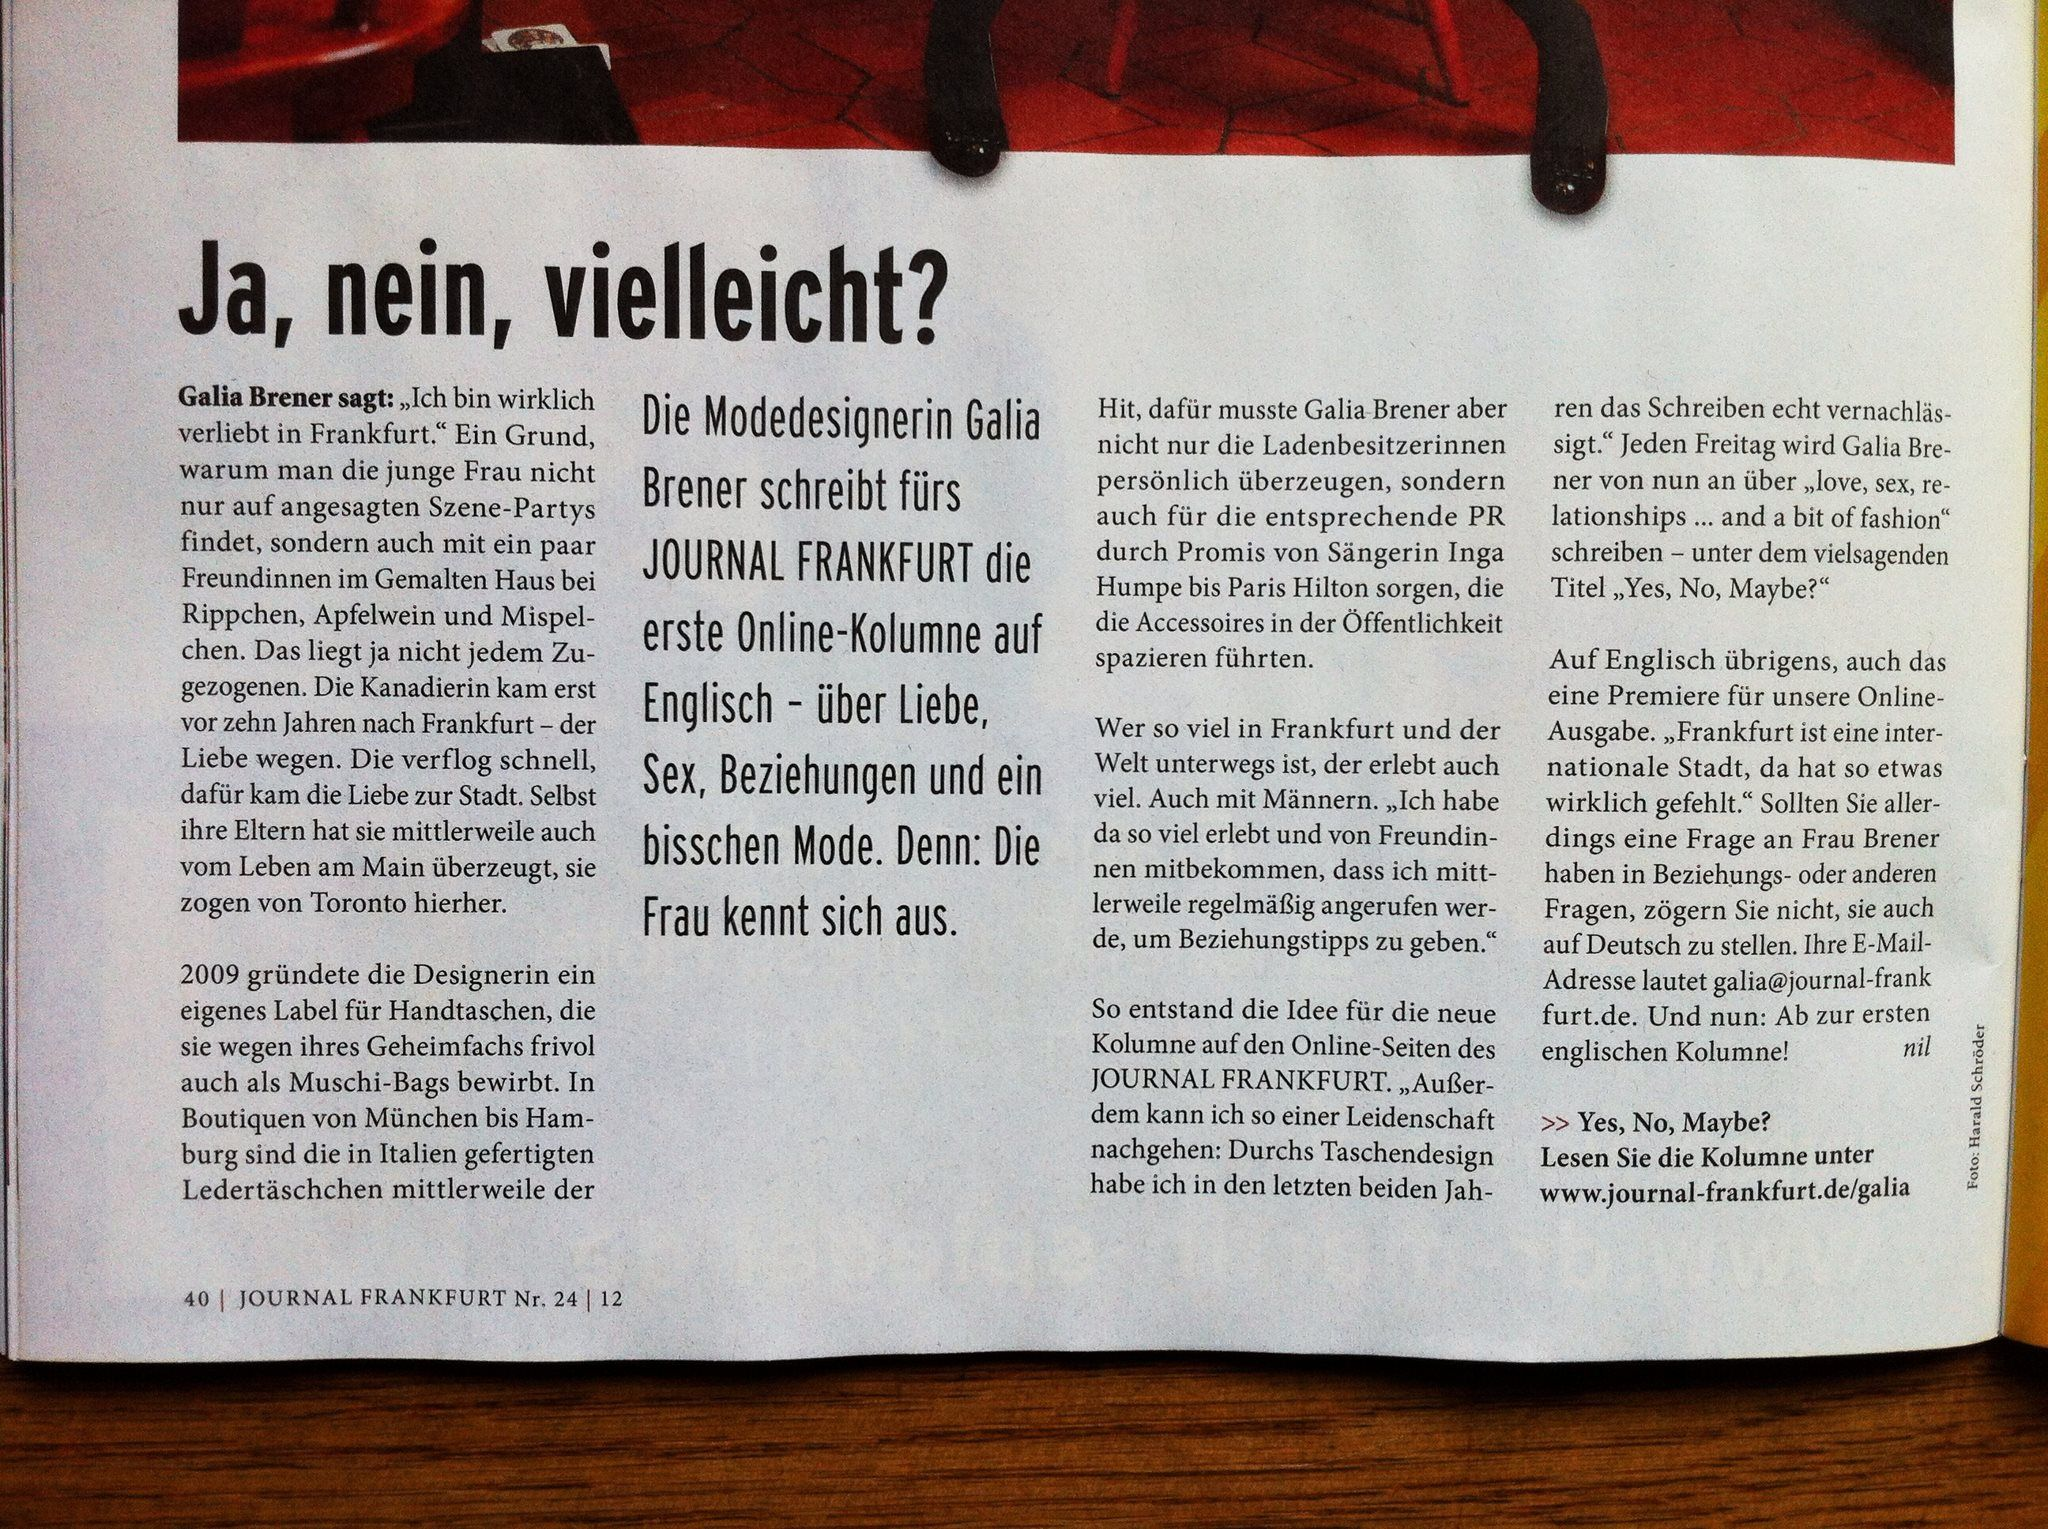 Journal_Frankfurt 09.11.2012_Yes, No, Maybe? promo_1